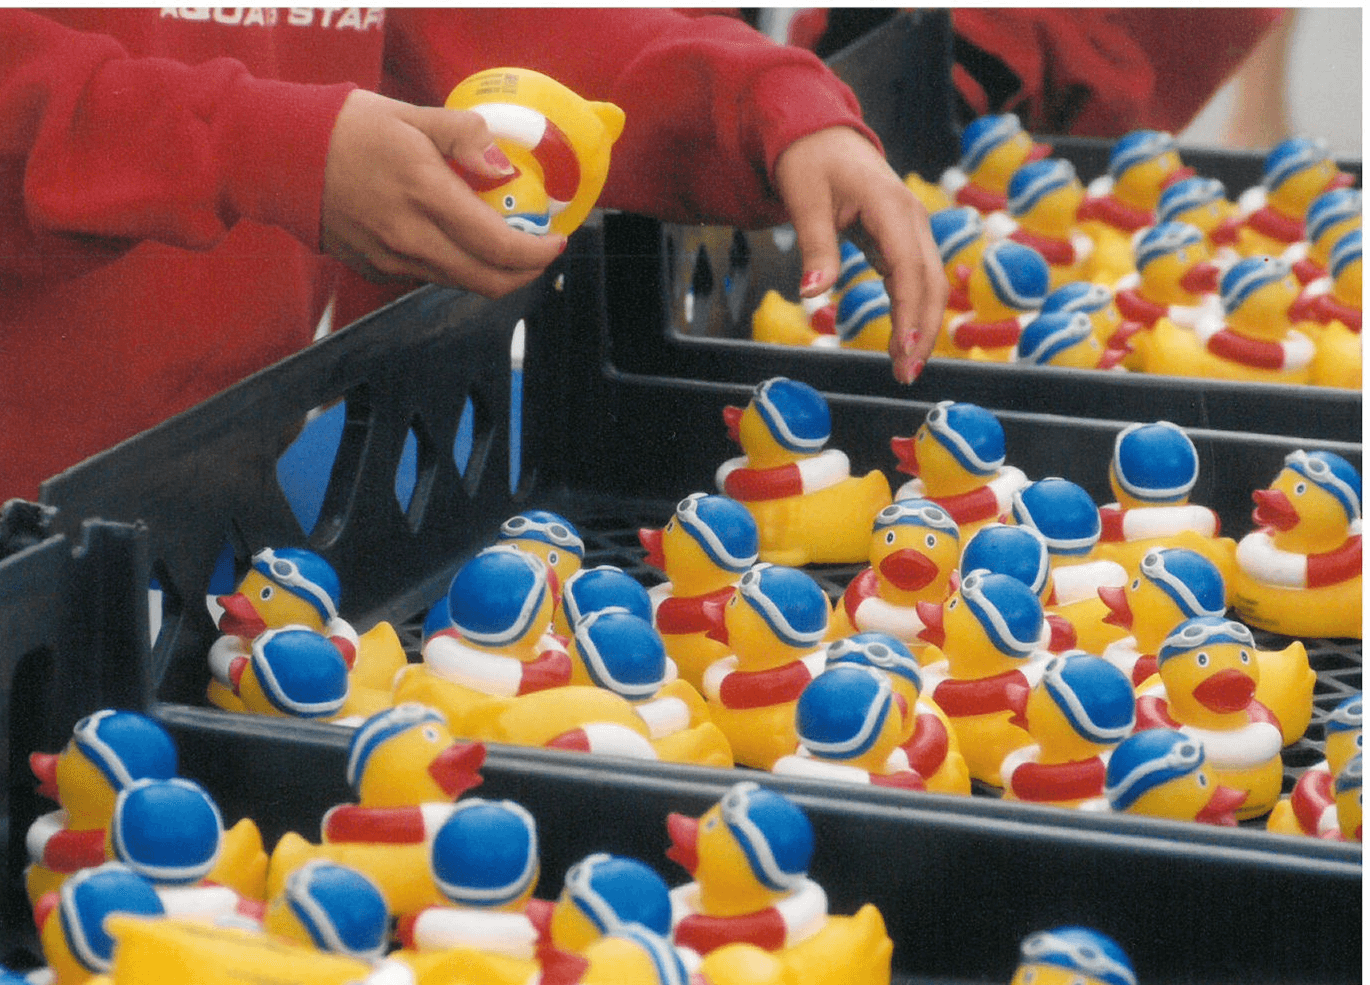 Getting all the ducks ready in a row.